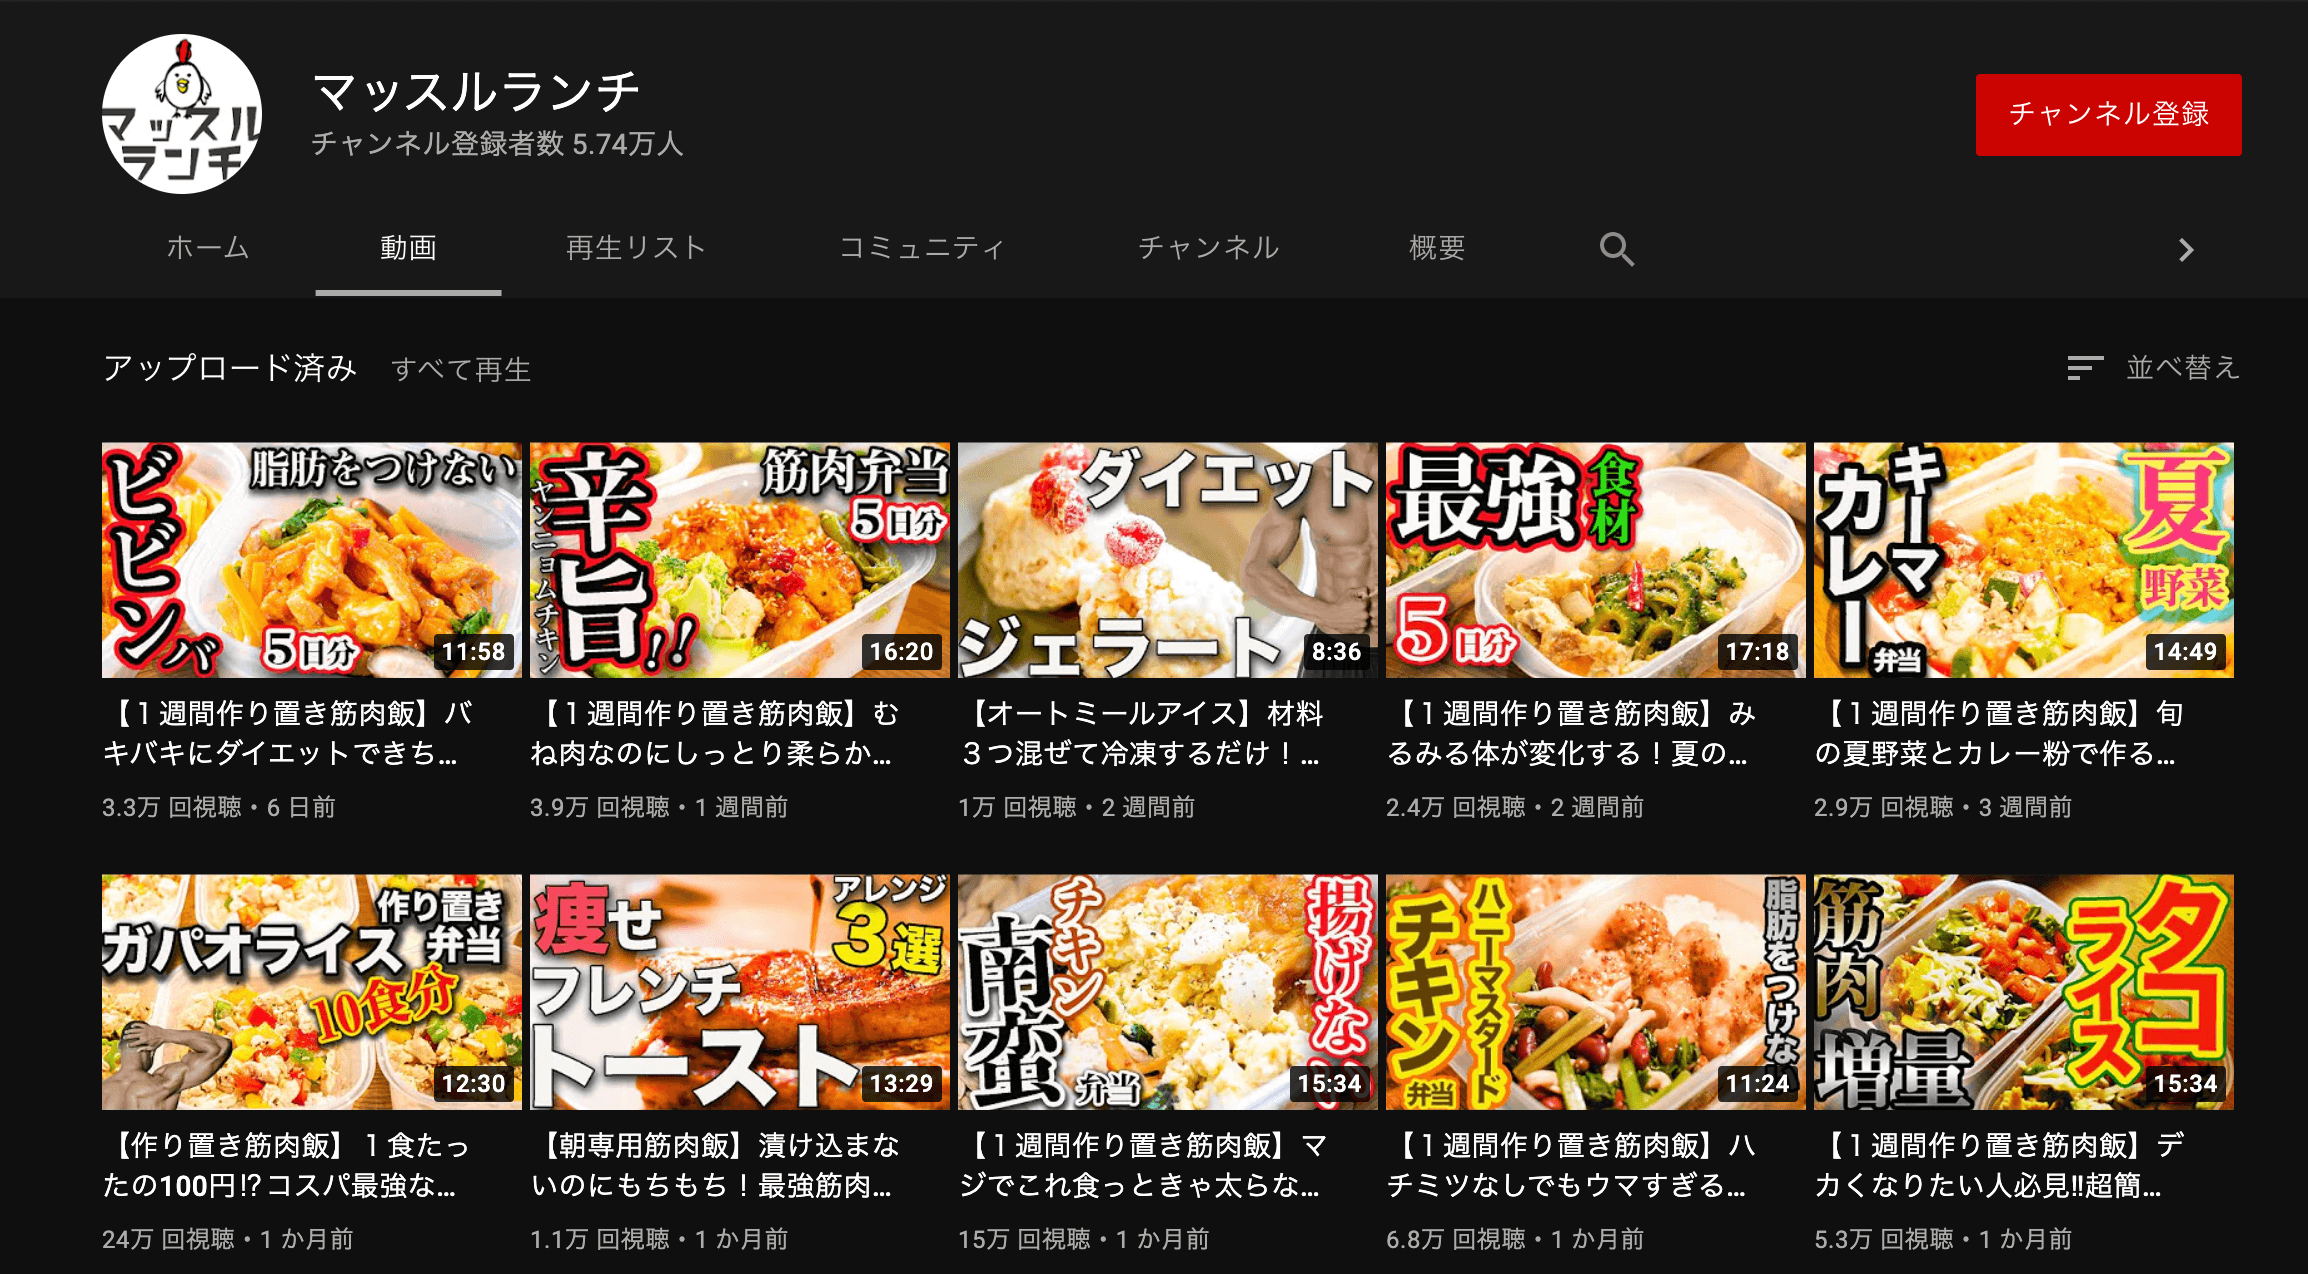 youtube-good channnel name-muscle lunch